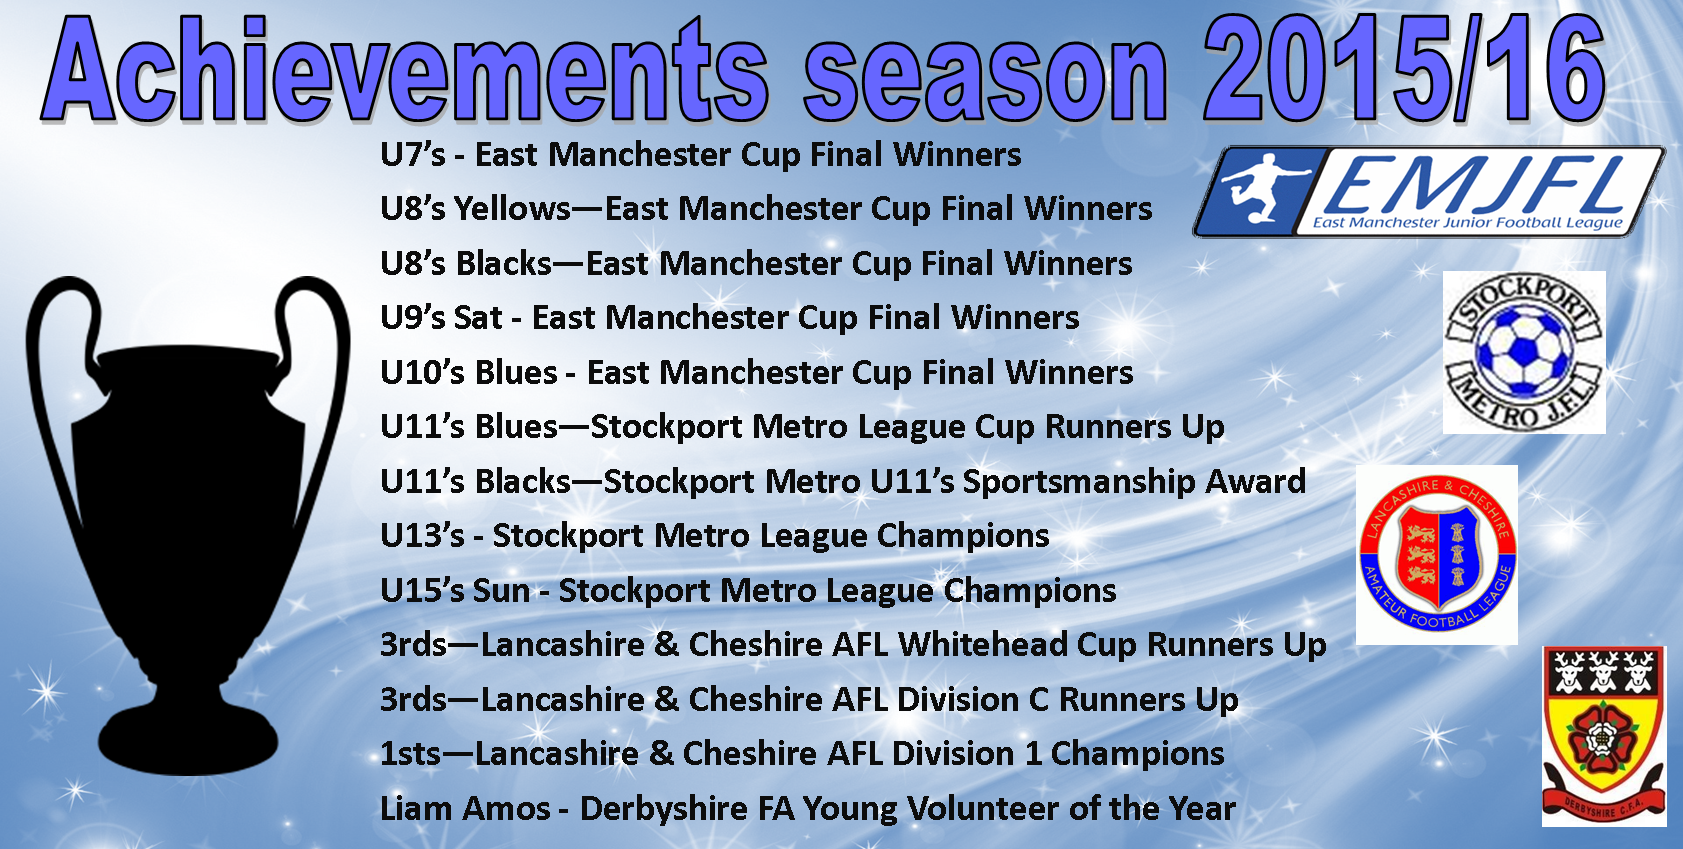 2015-16 achievements